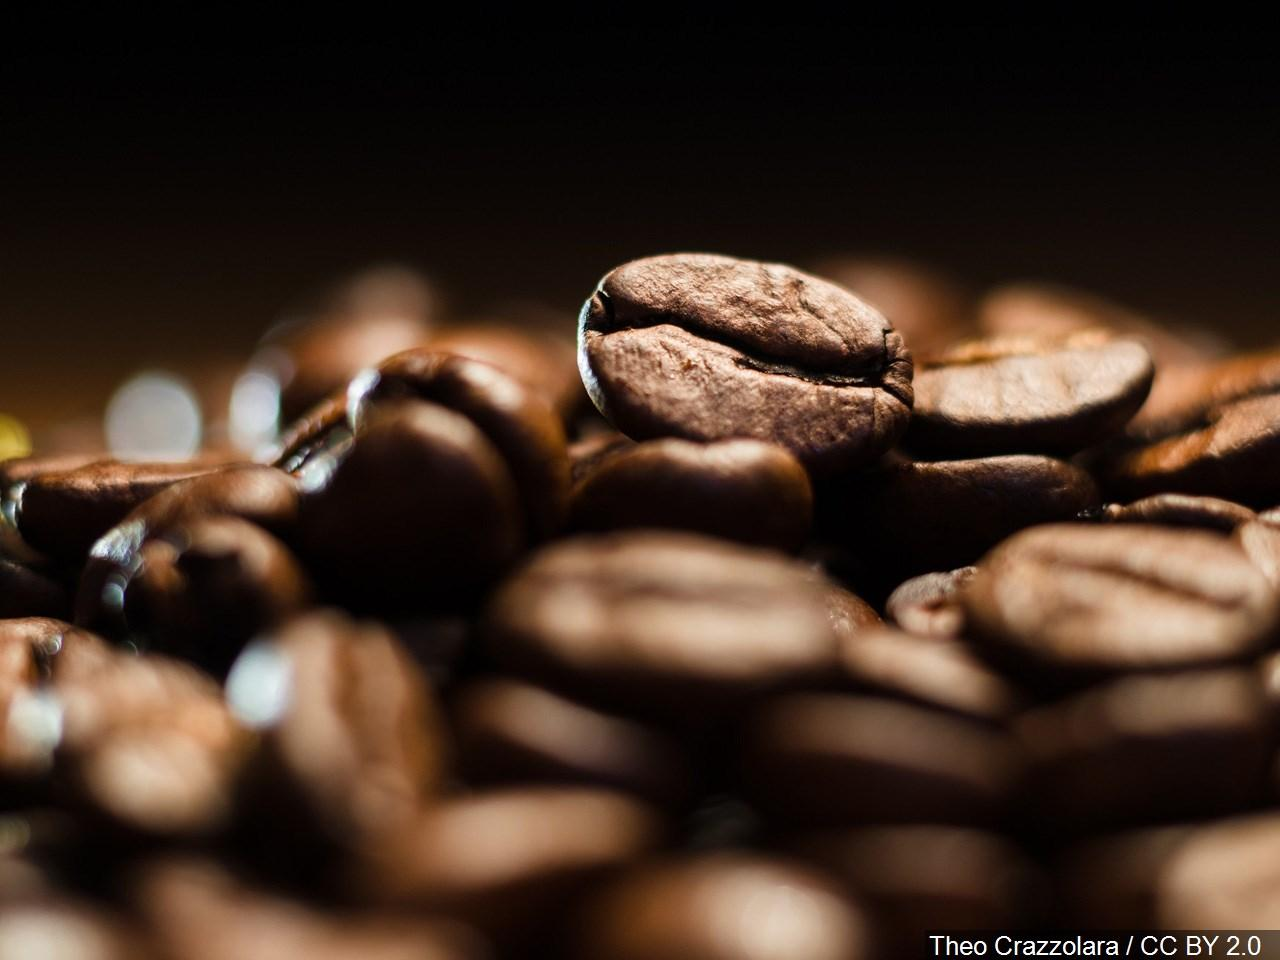 'High extinction risk' for 60% of world's coffee species, study claims. (Photo: Theo Crazzolara via MGN)